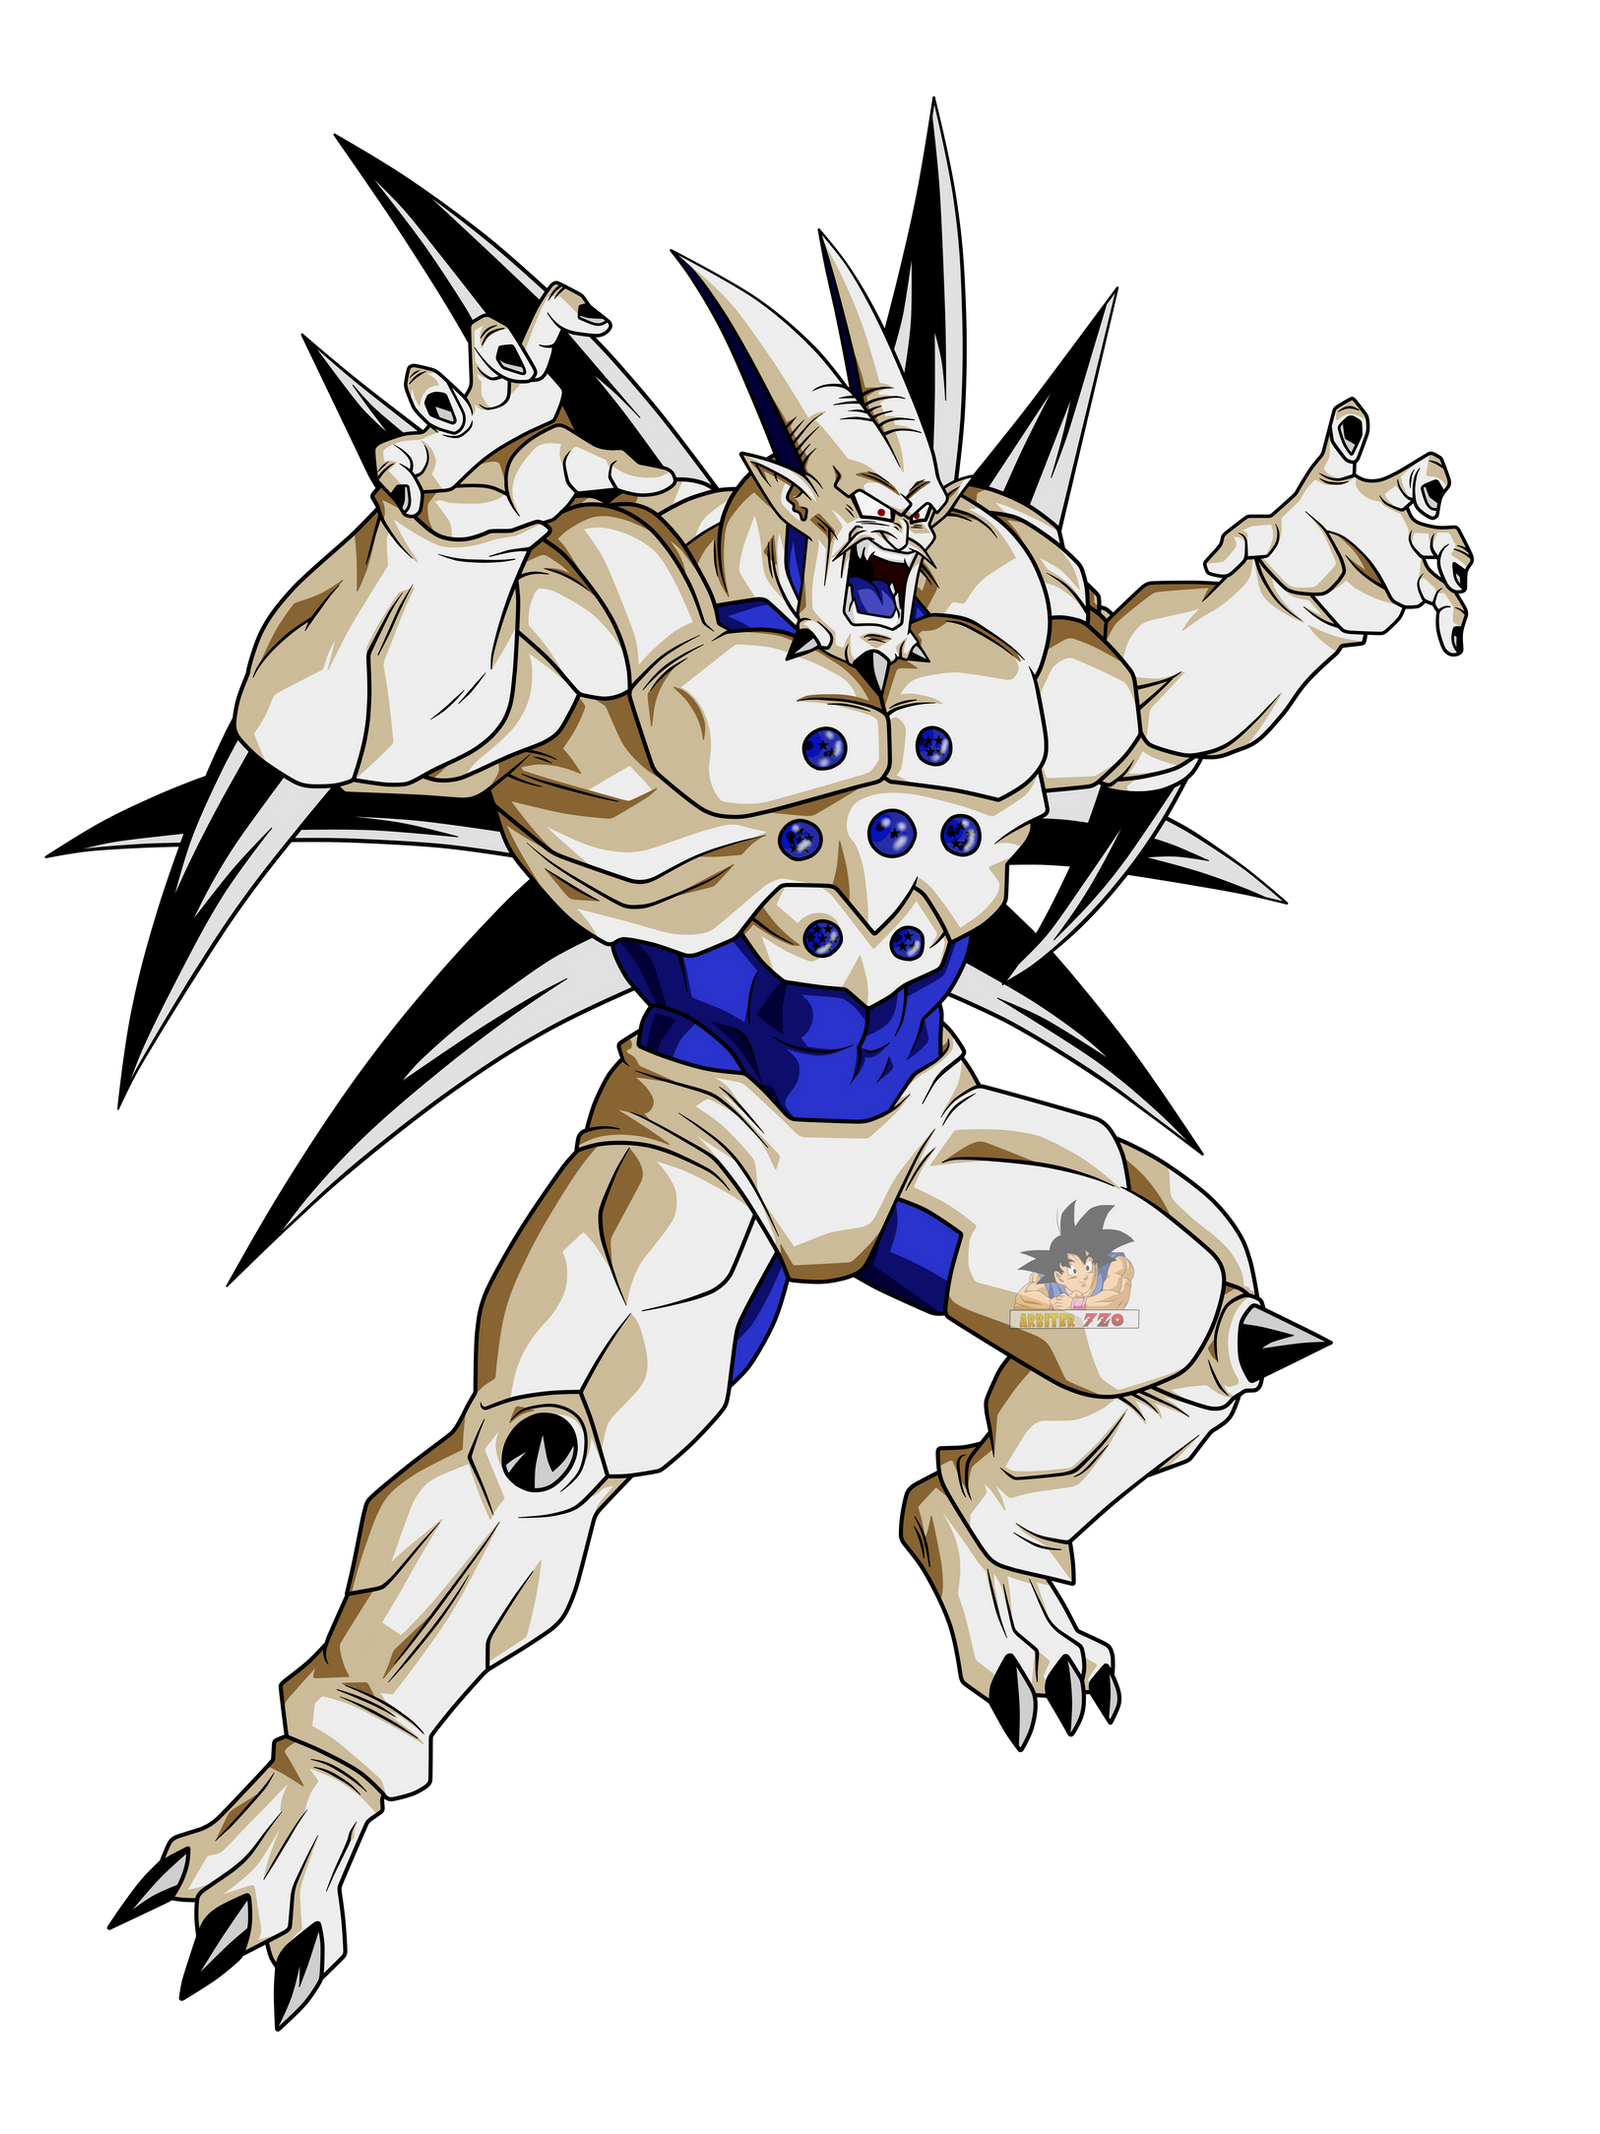 Omega Shenron By Arbiter720 On Deviantart This is a fanpage for the strongest villain in the dragonball series yi xing long better known as omega shenron. omega shenron by arbiter720 on deviantart